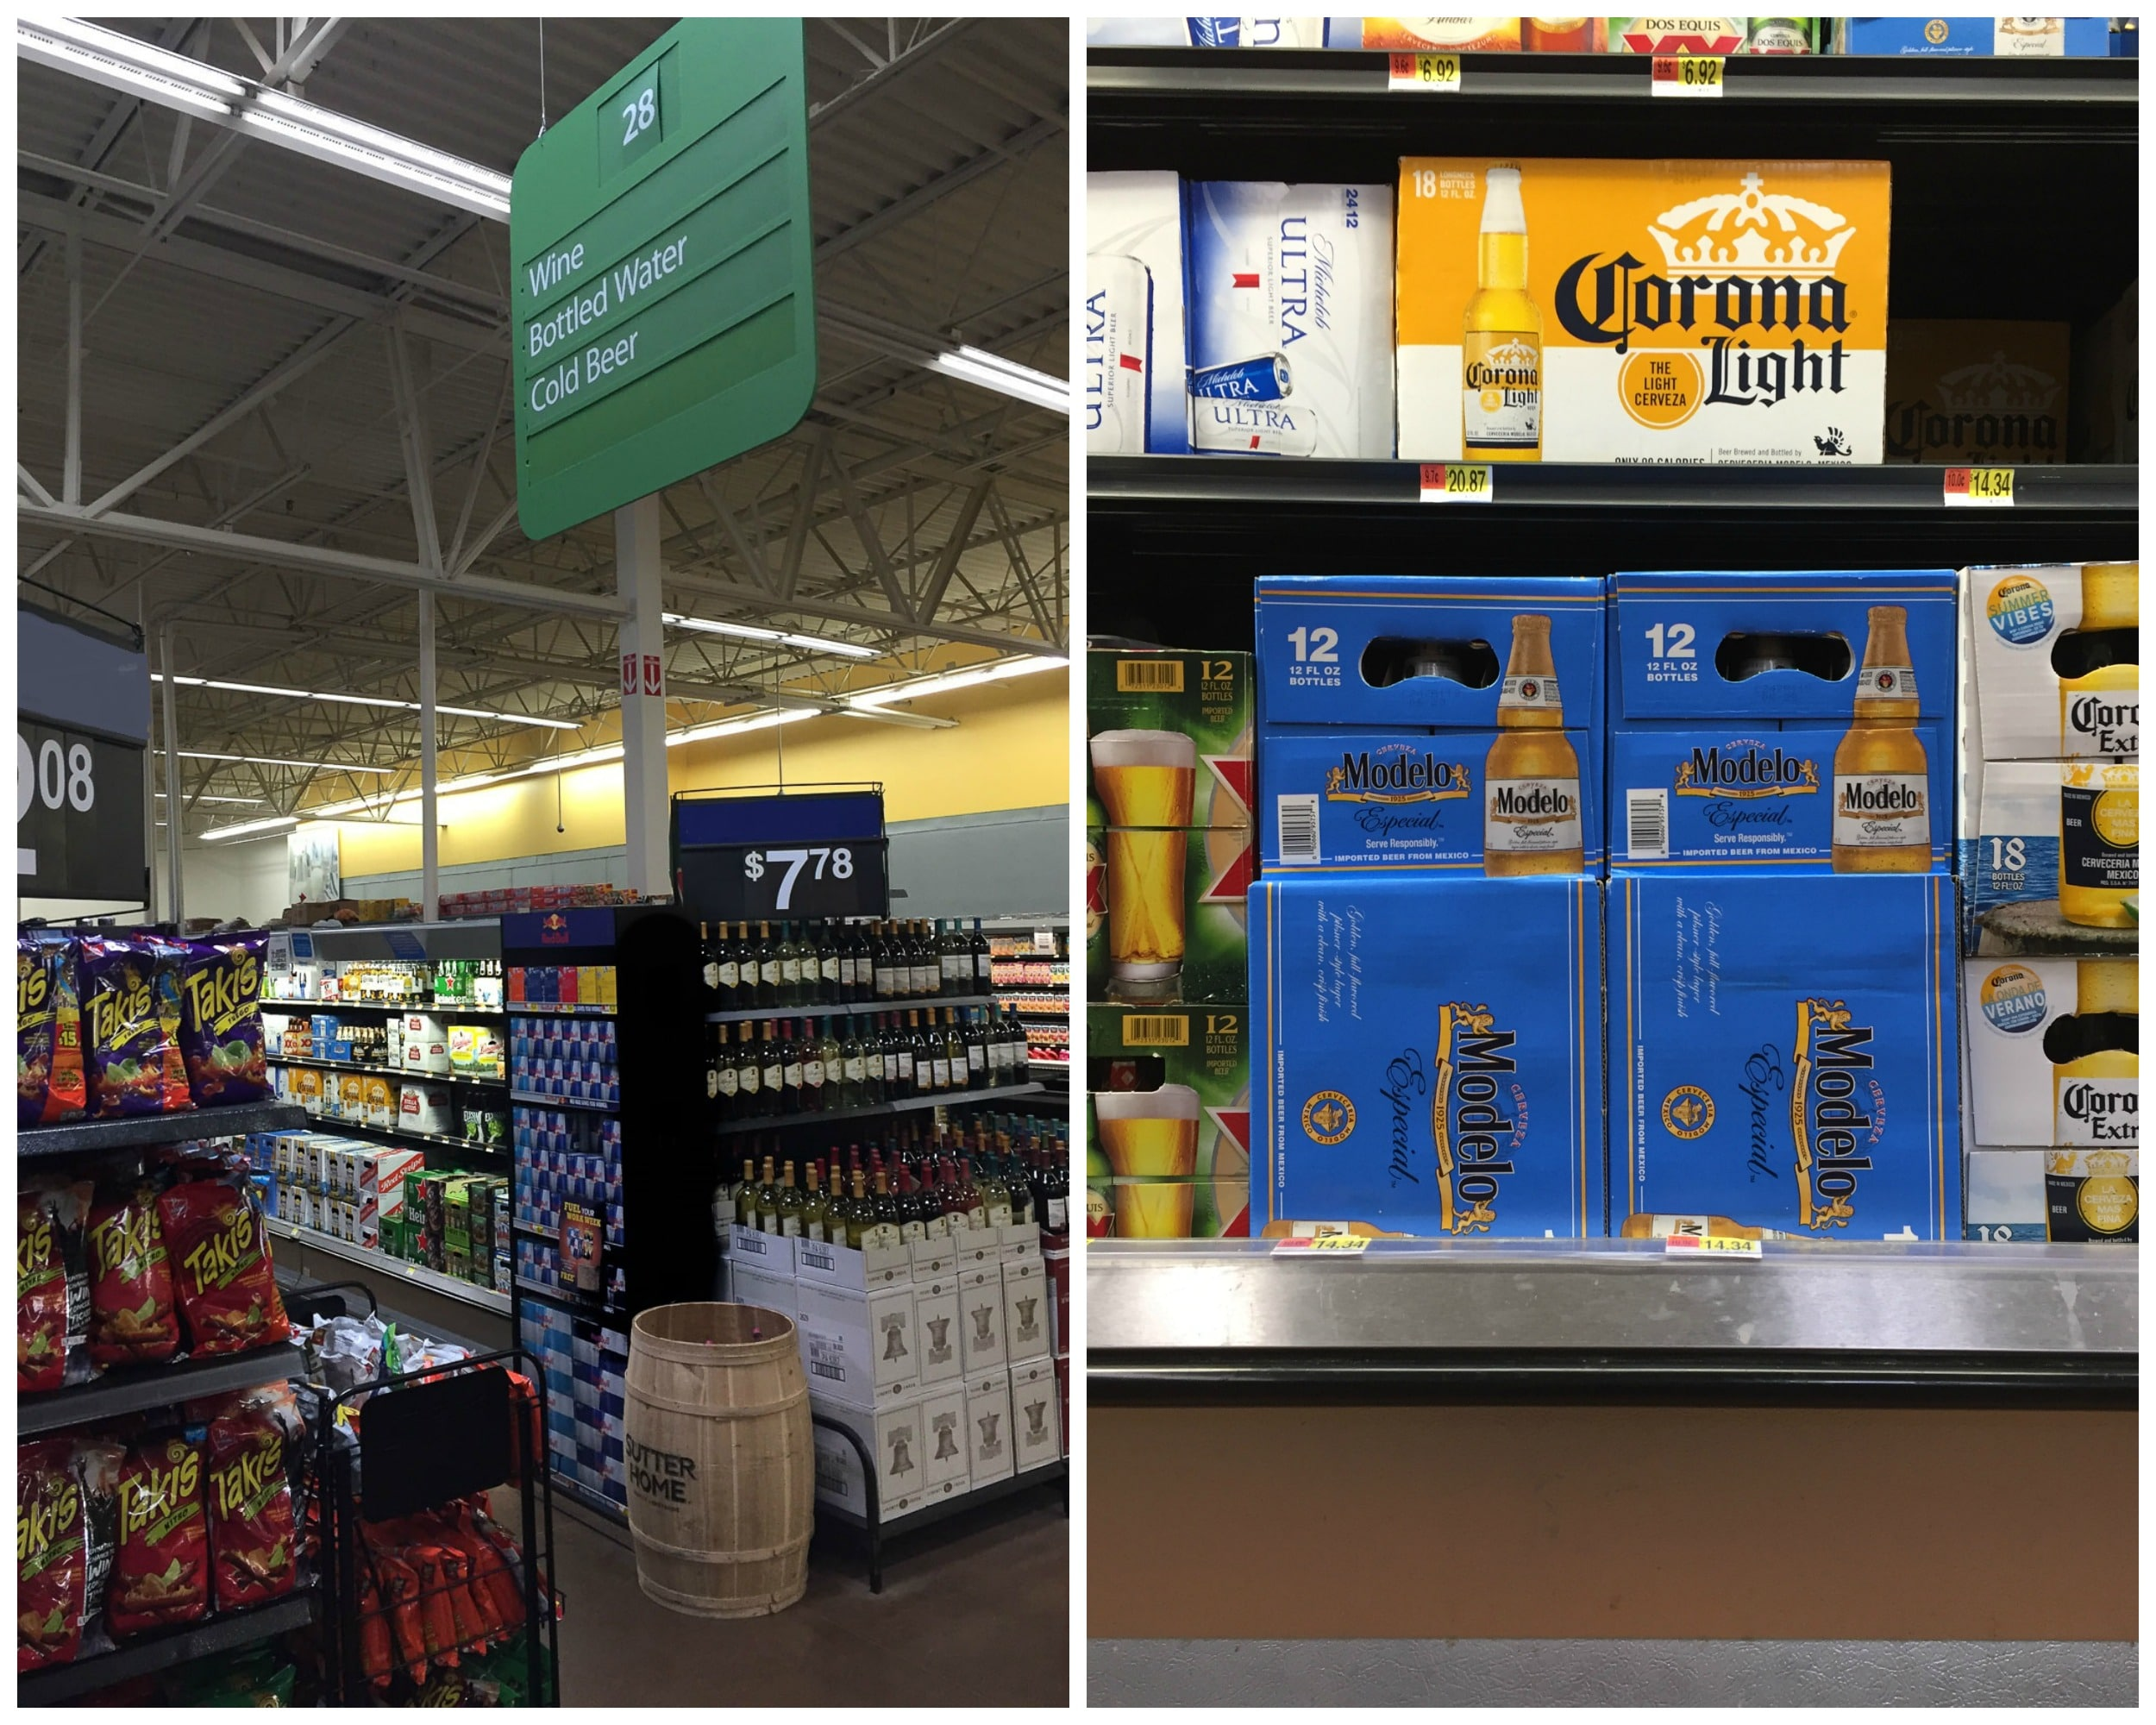 Beer aisle with cases of Modelo